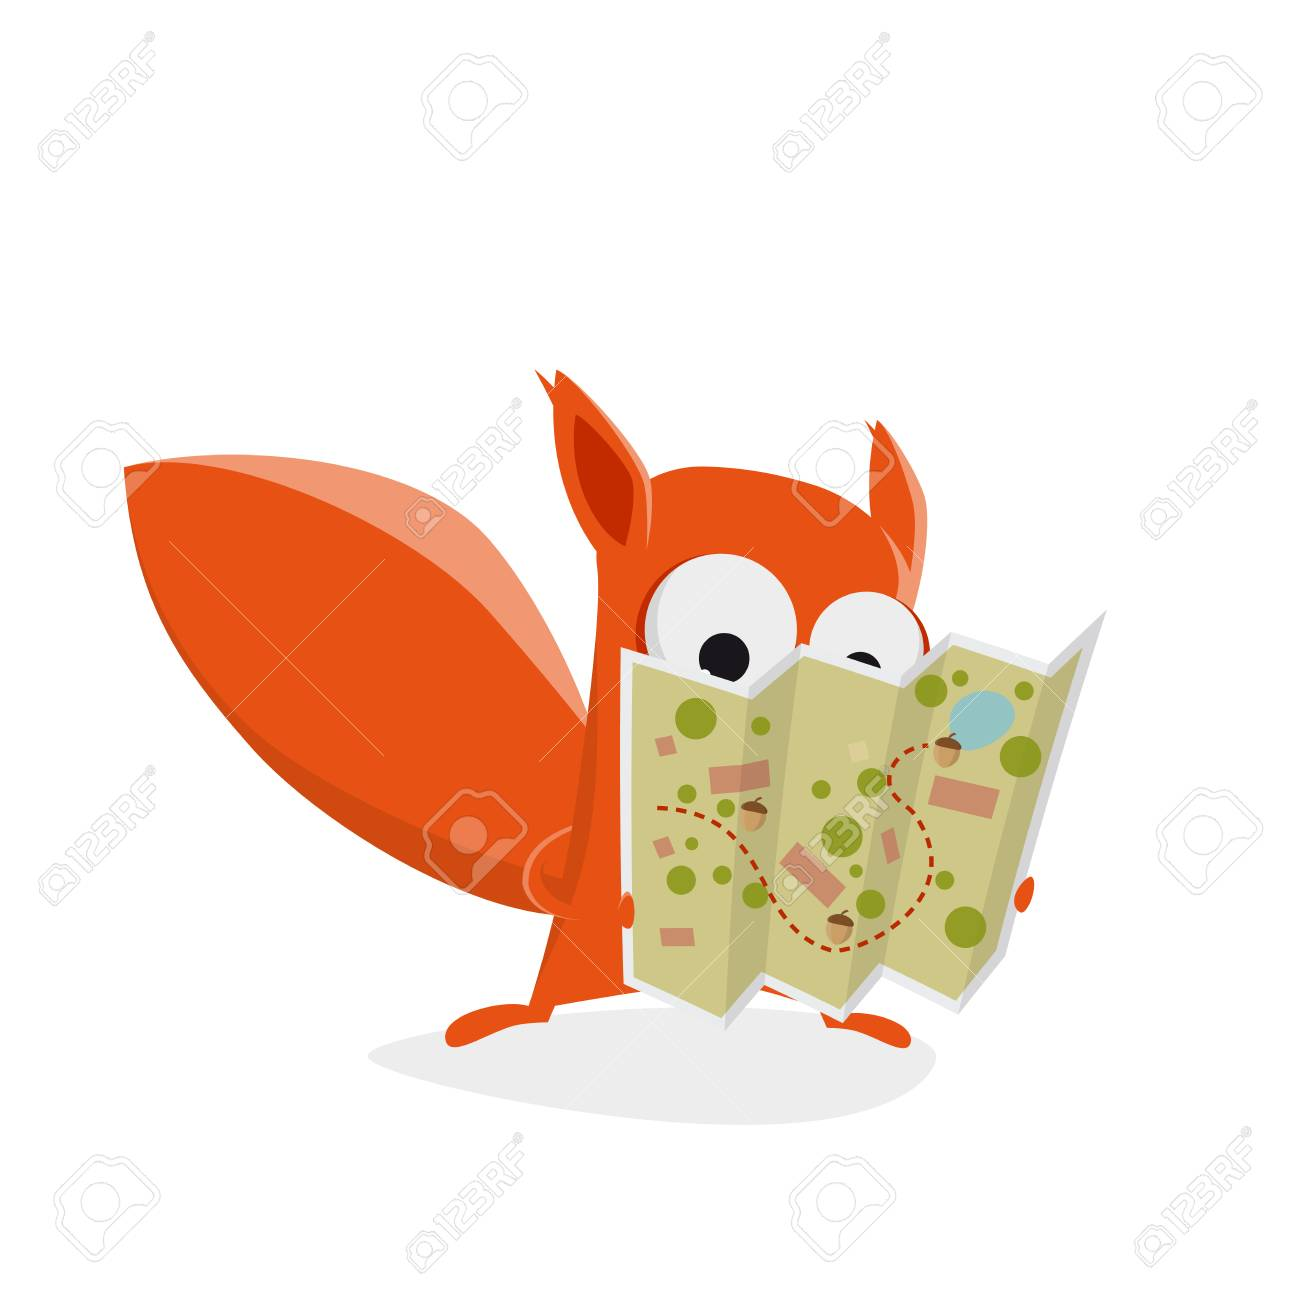 Funny Cartoon Squirrel Holding A Treasure Map With Nuts Lizenzfrei on